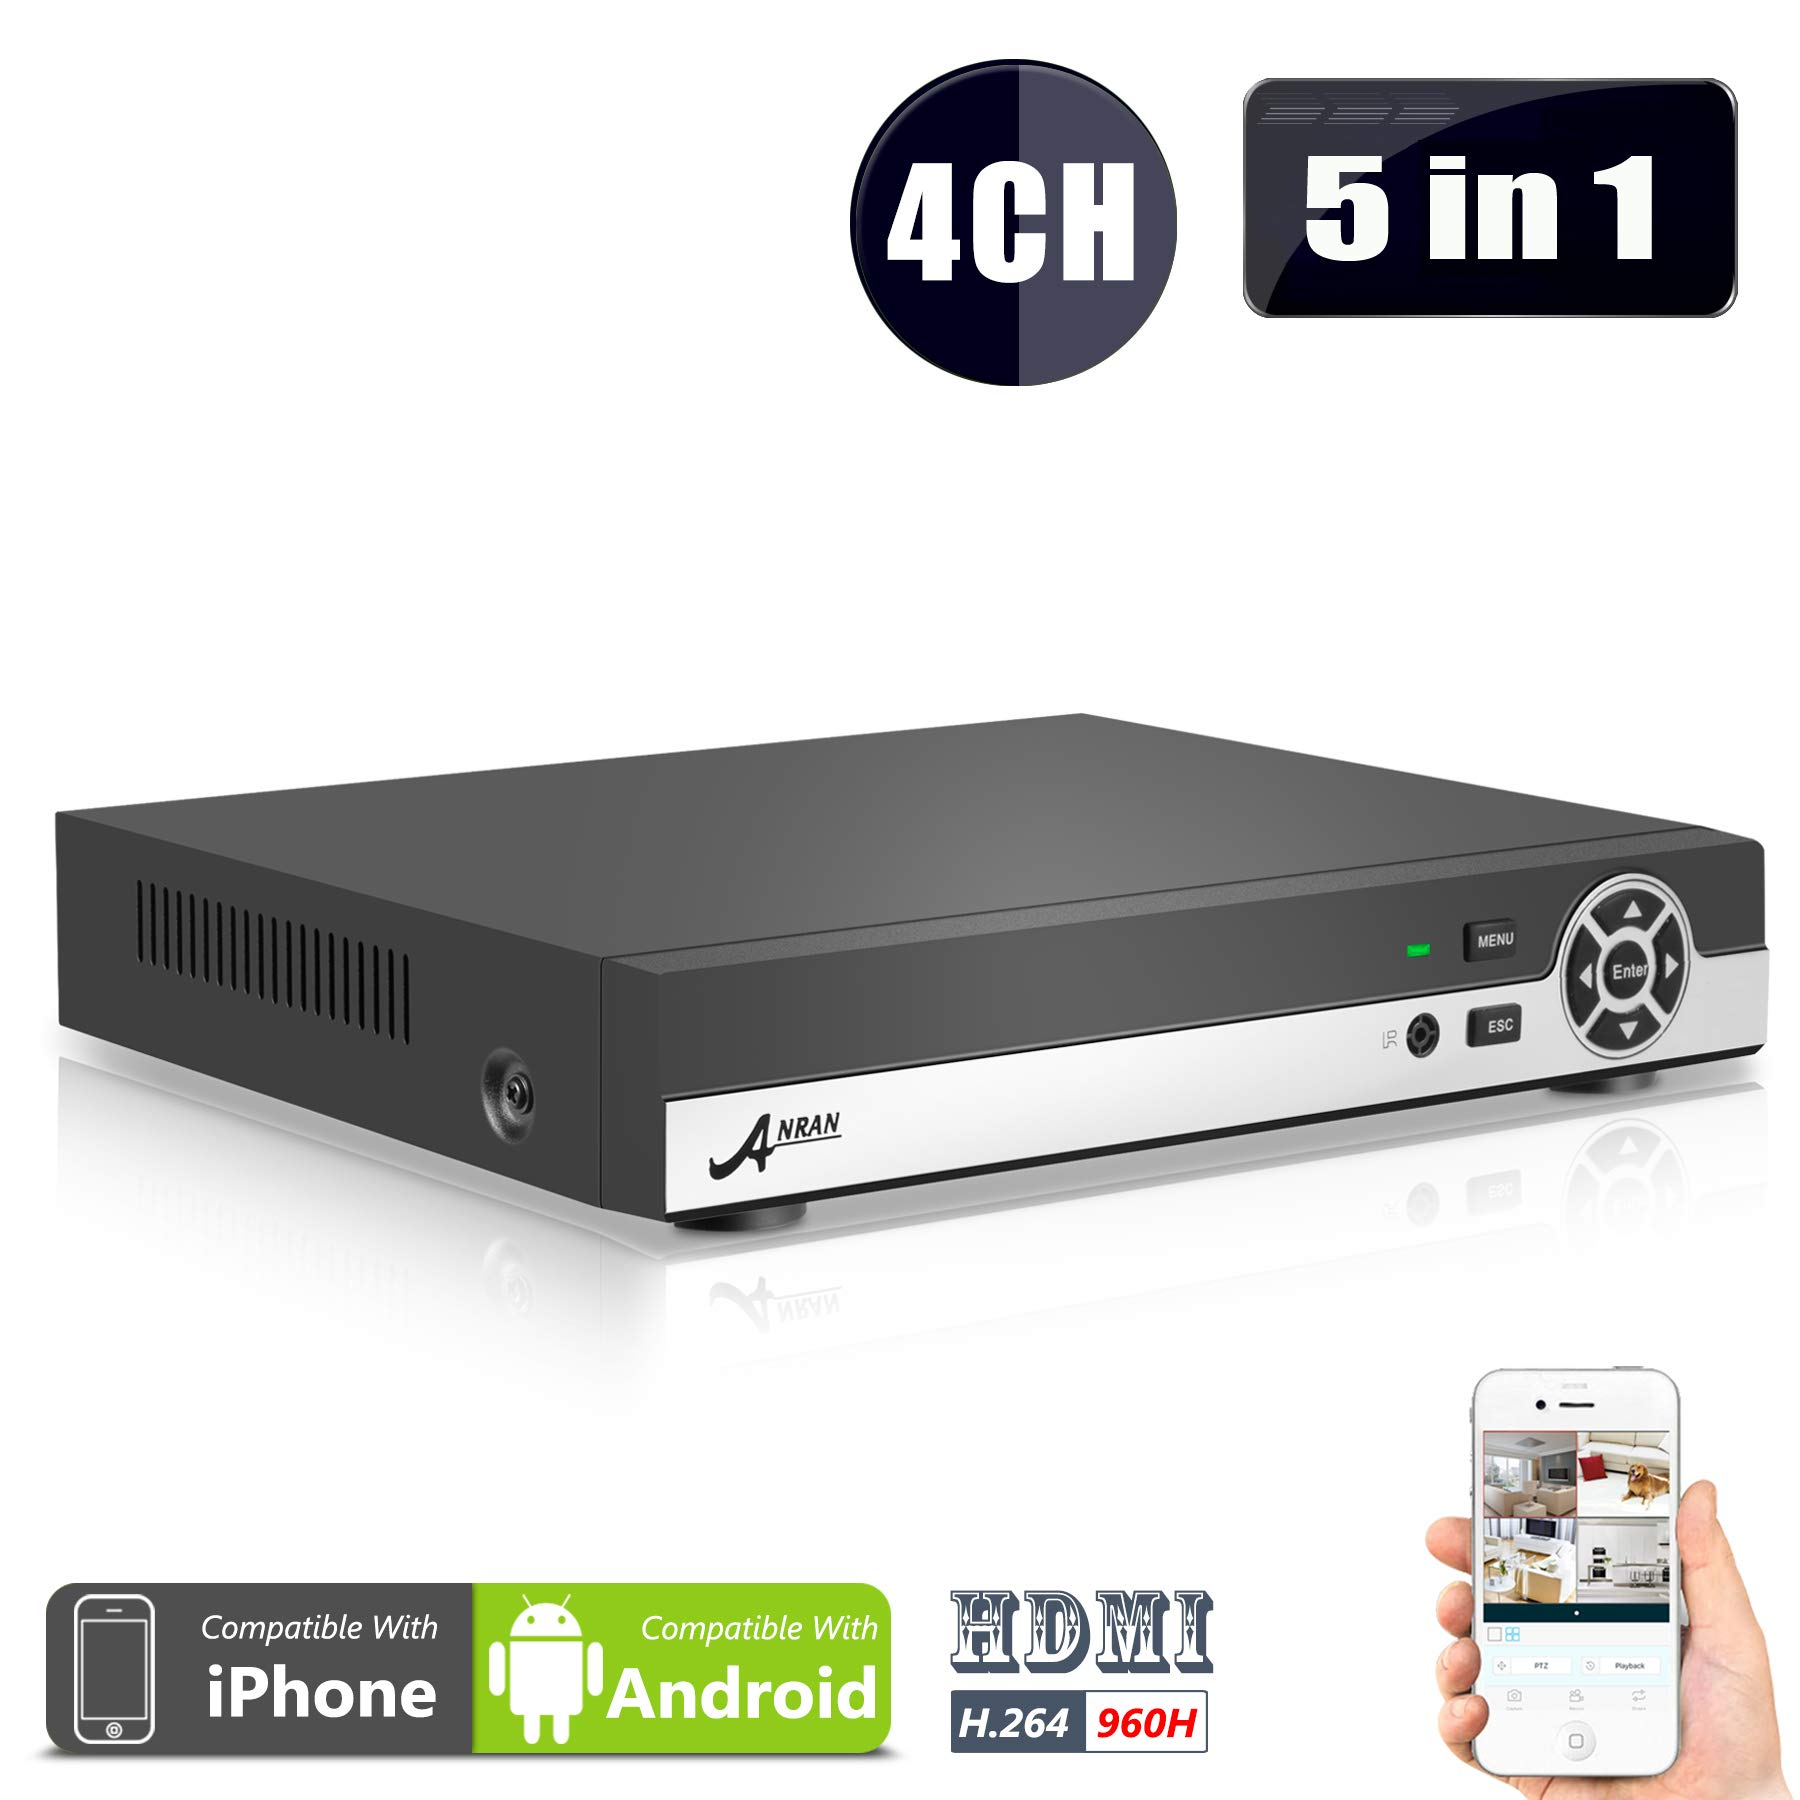 DVR 4 Channel,4CH 5 in 1 Security DVR 1080N AHD NVR HD Digital Video Recorder for CCTV Security Camera System Support Mobile Phone Monitoring,Motion Detection,Real time Recording ,No HDD ANRAN